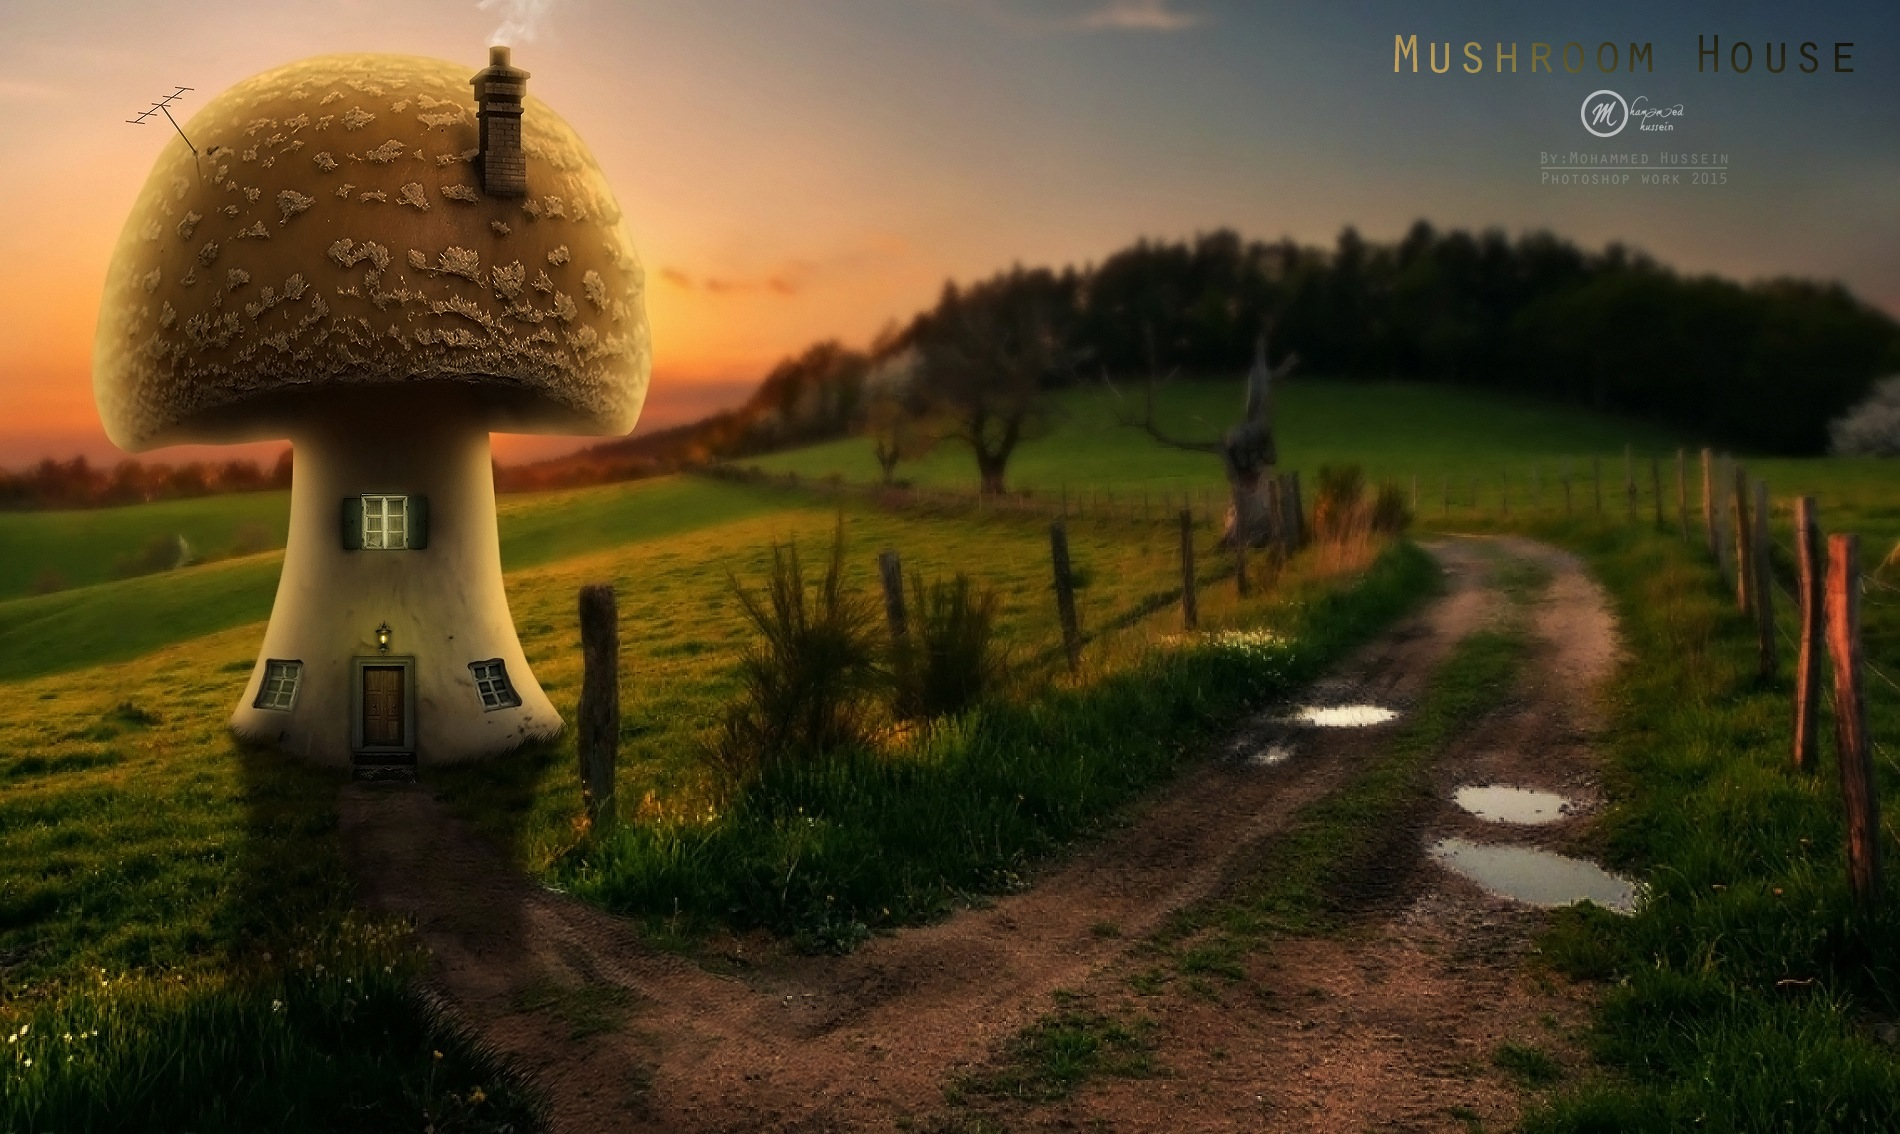 Mushroom House  by Mohammed Hussein Photography